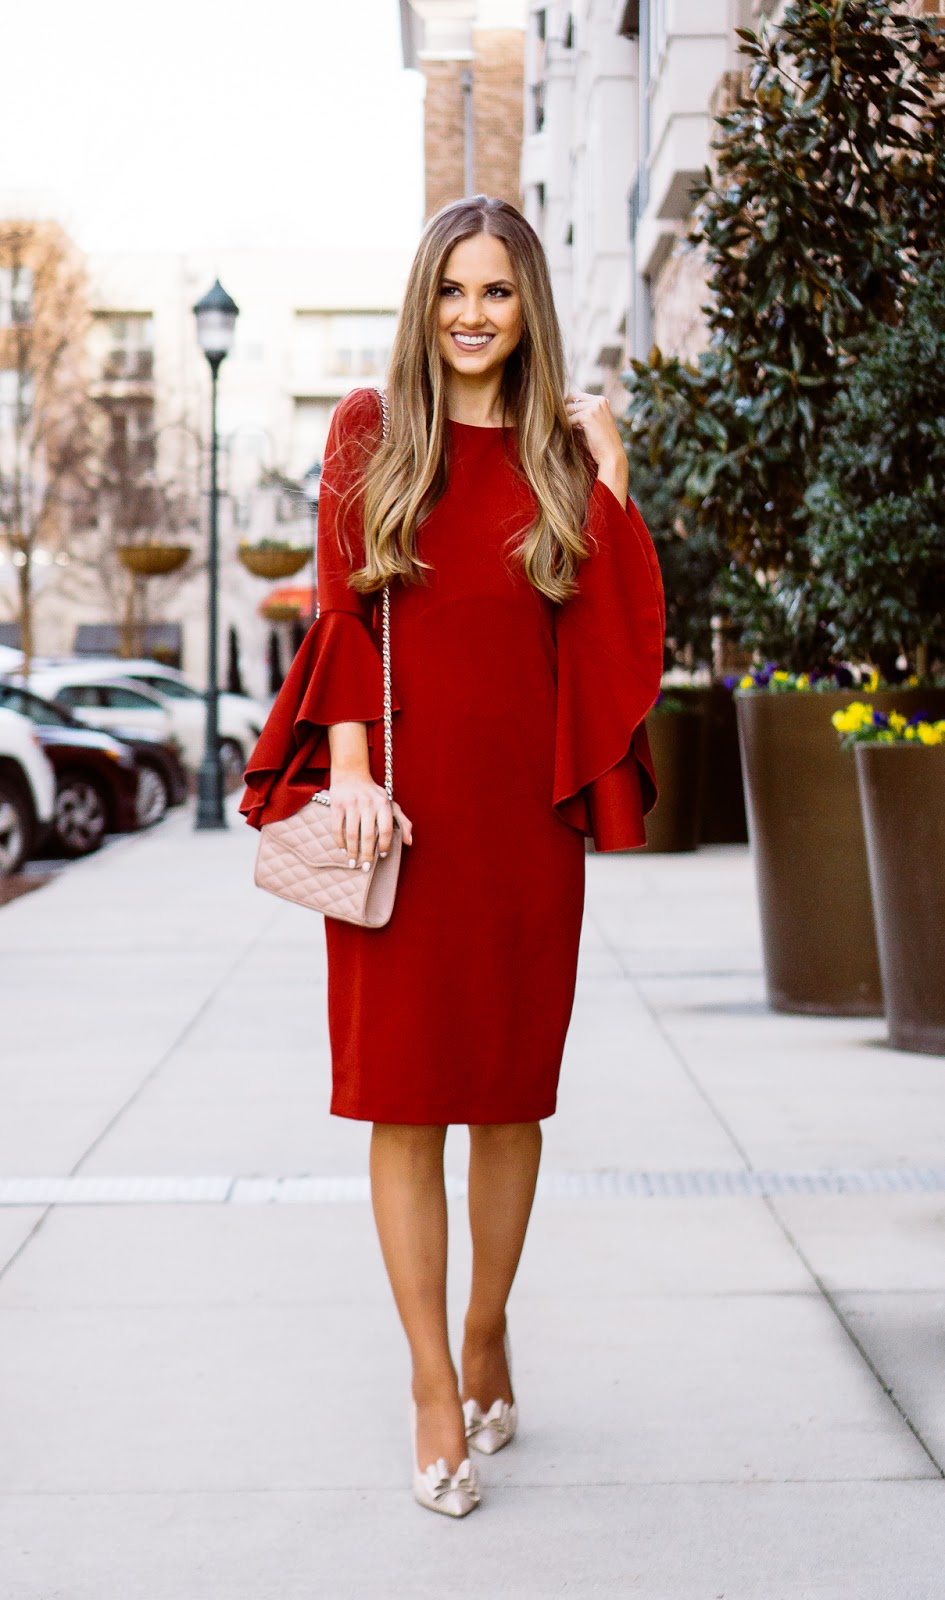 valentines-day-outfits-for-the-classy-lady